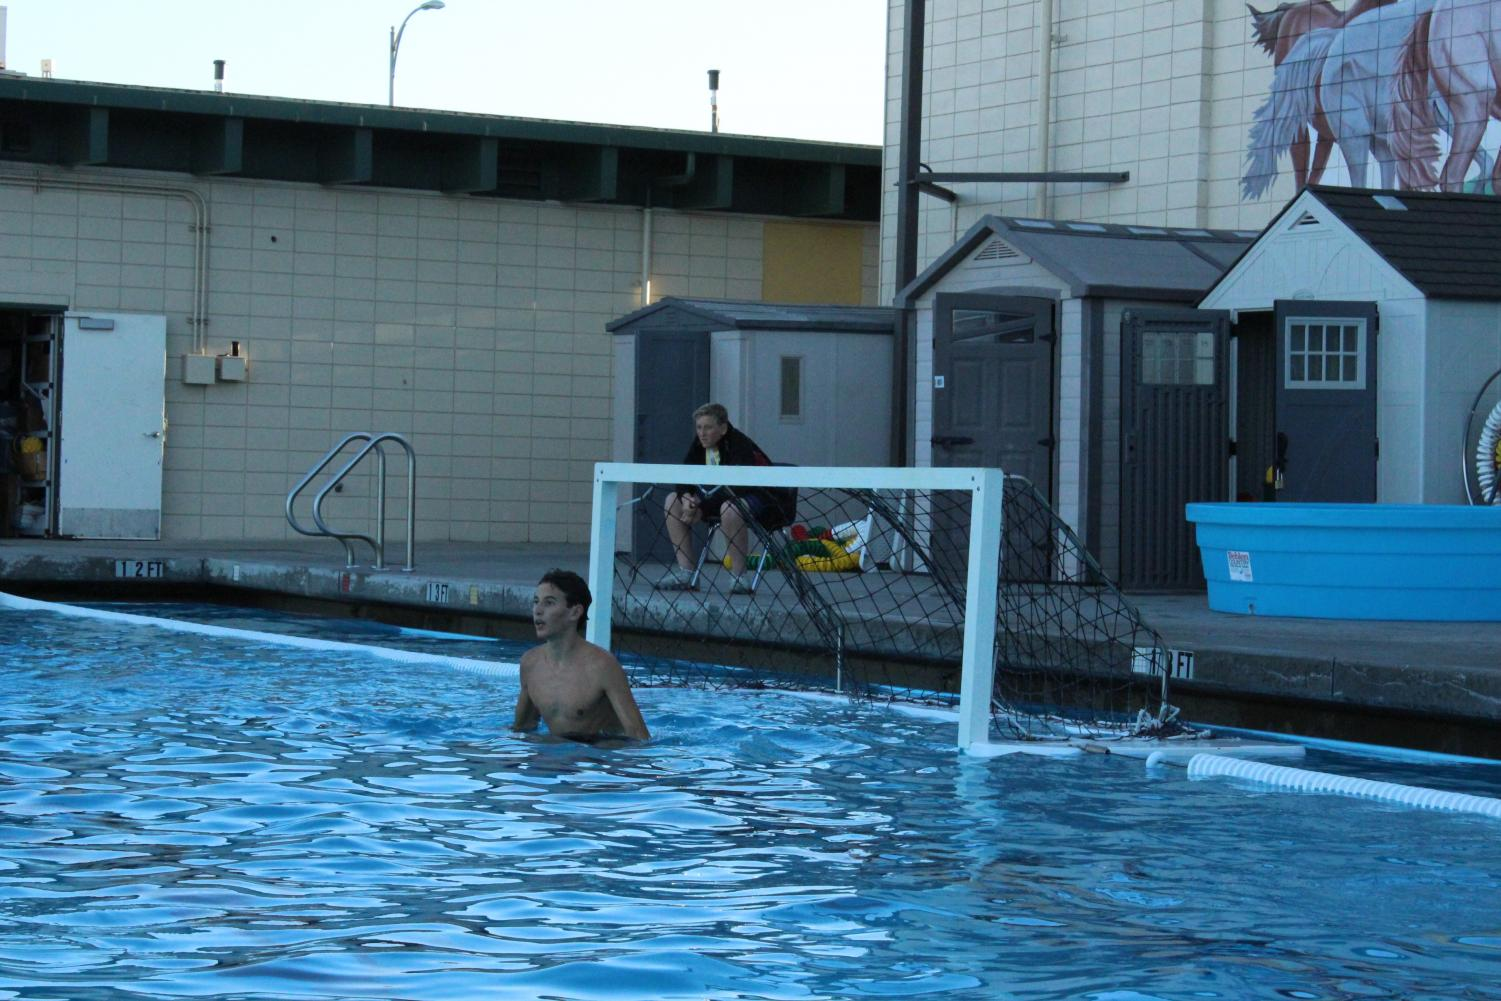 'The desire to get better': the secret behind water polo goal-tending